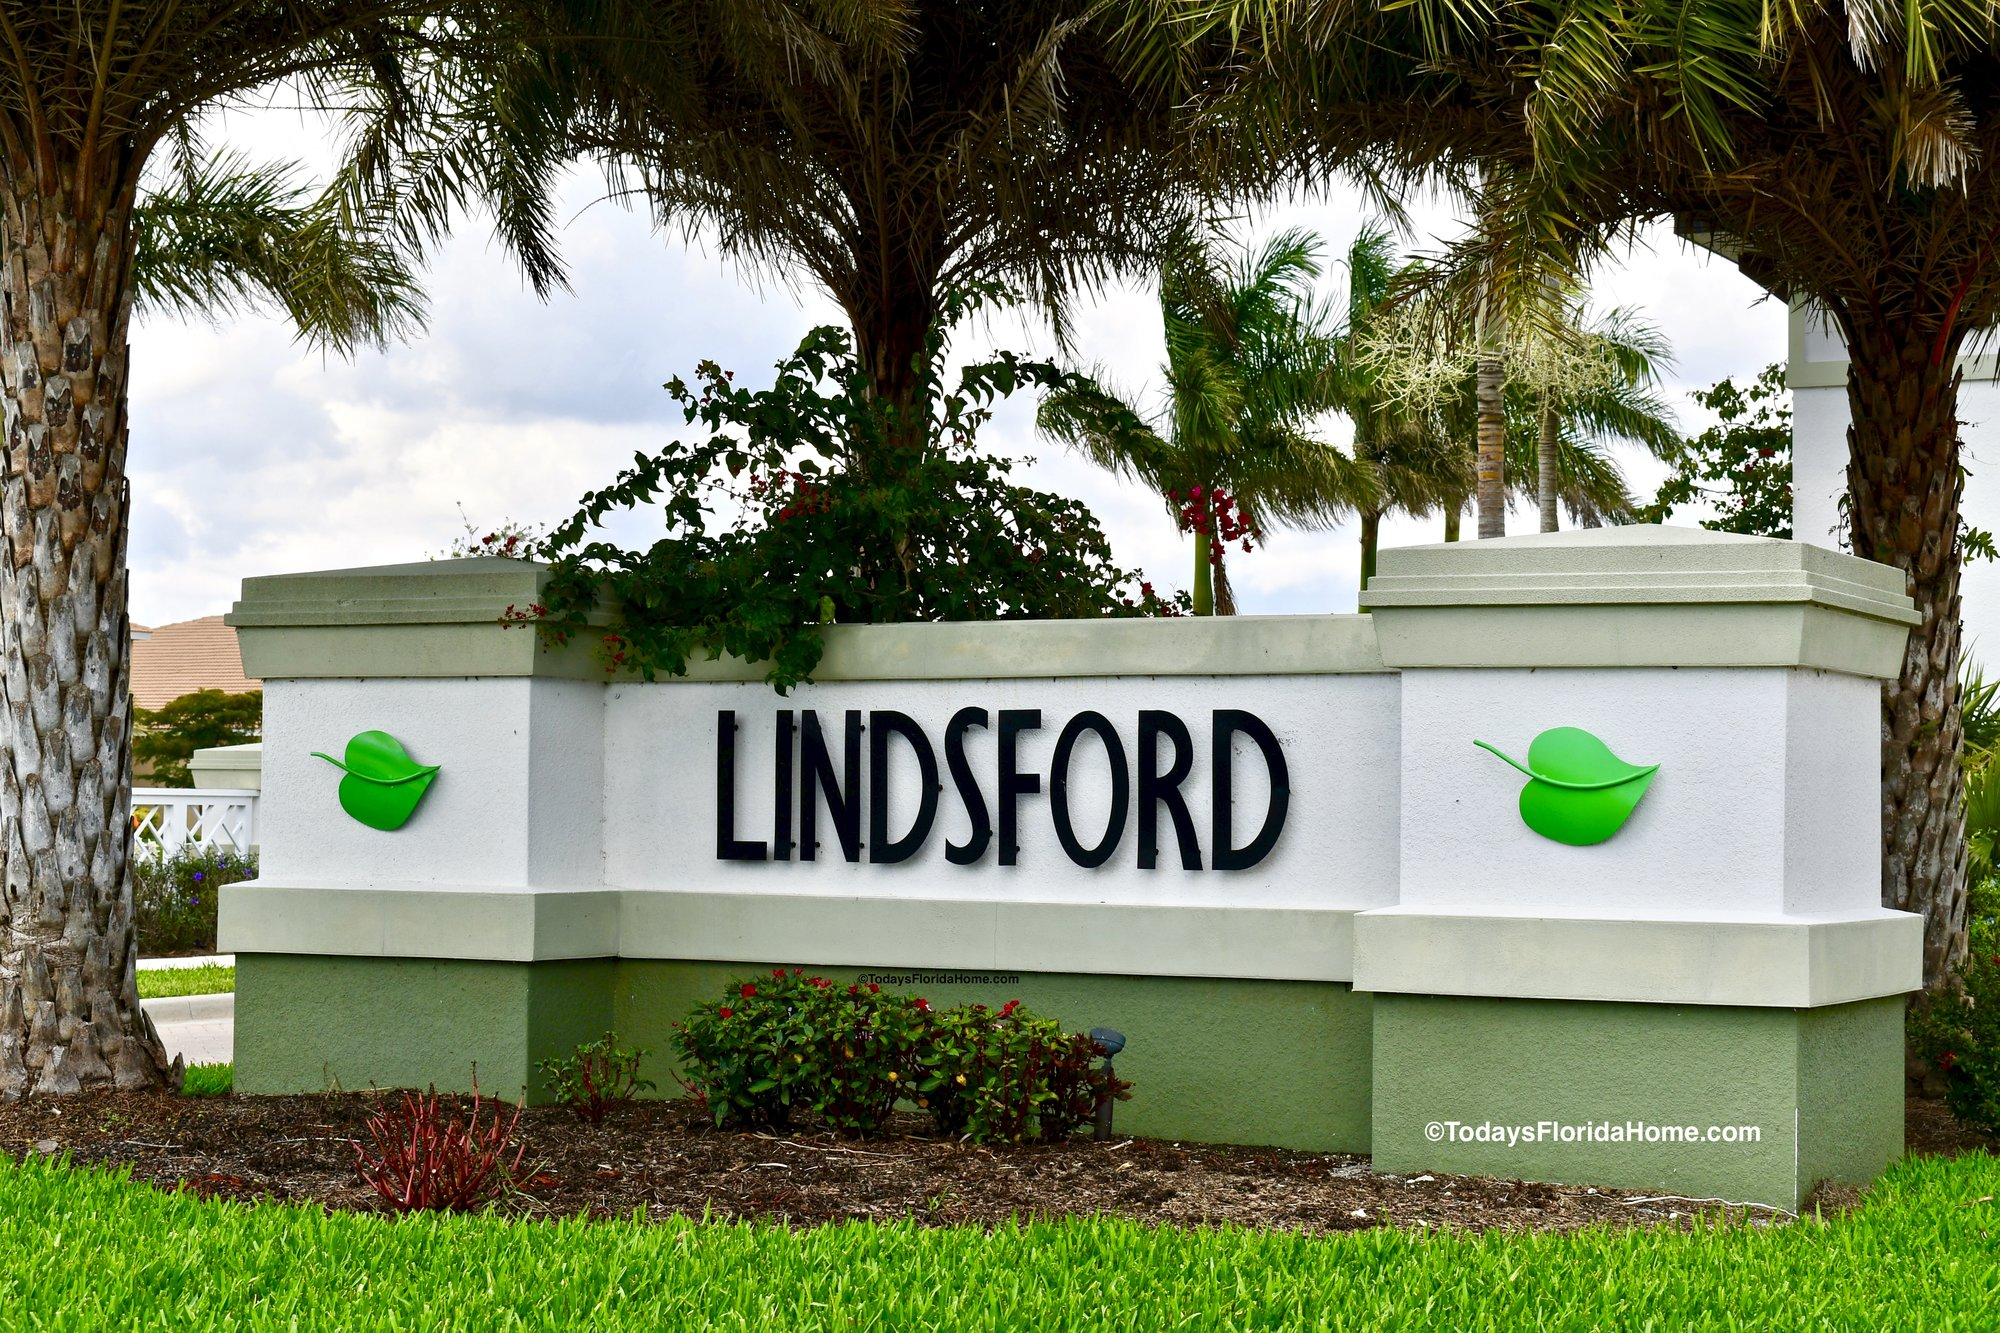 Lindsford, DR Horton, DR Horton Communities, DR Horton Southwest Florida, DR Horton Florida, Florida Real Estate, Gated Communities, New Home Builder Southwest Florida